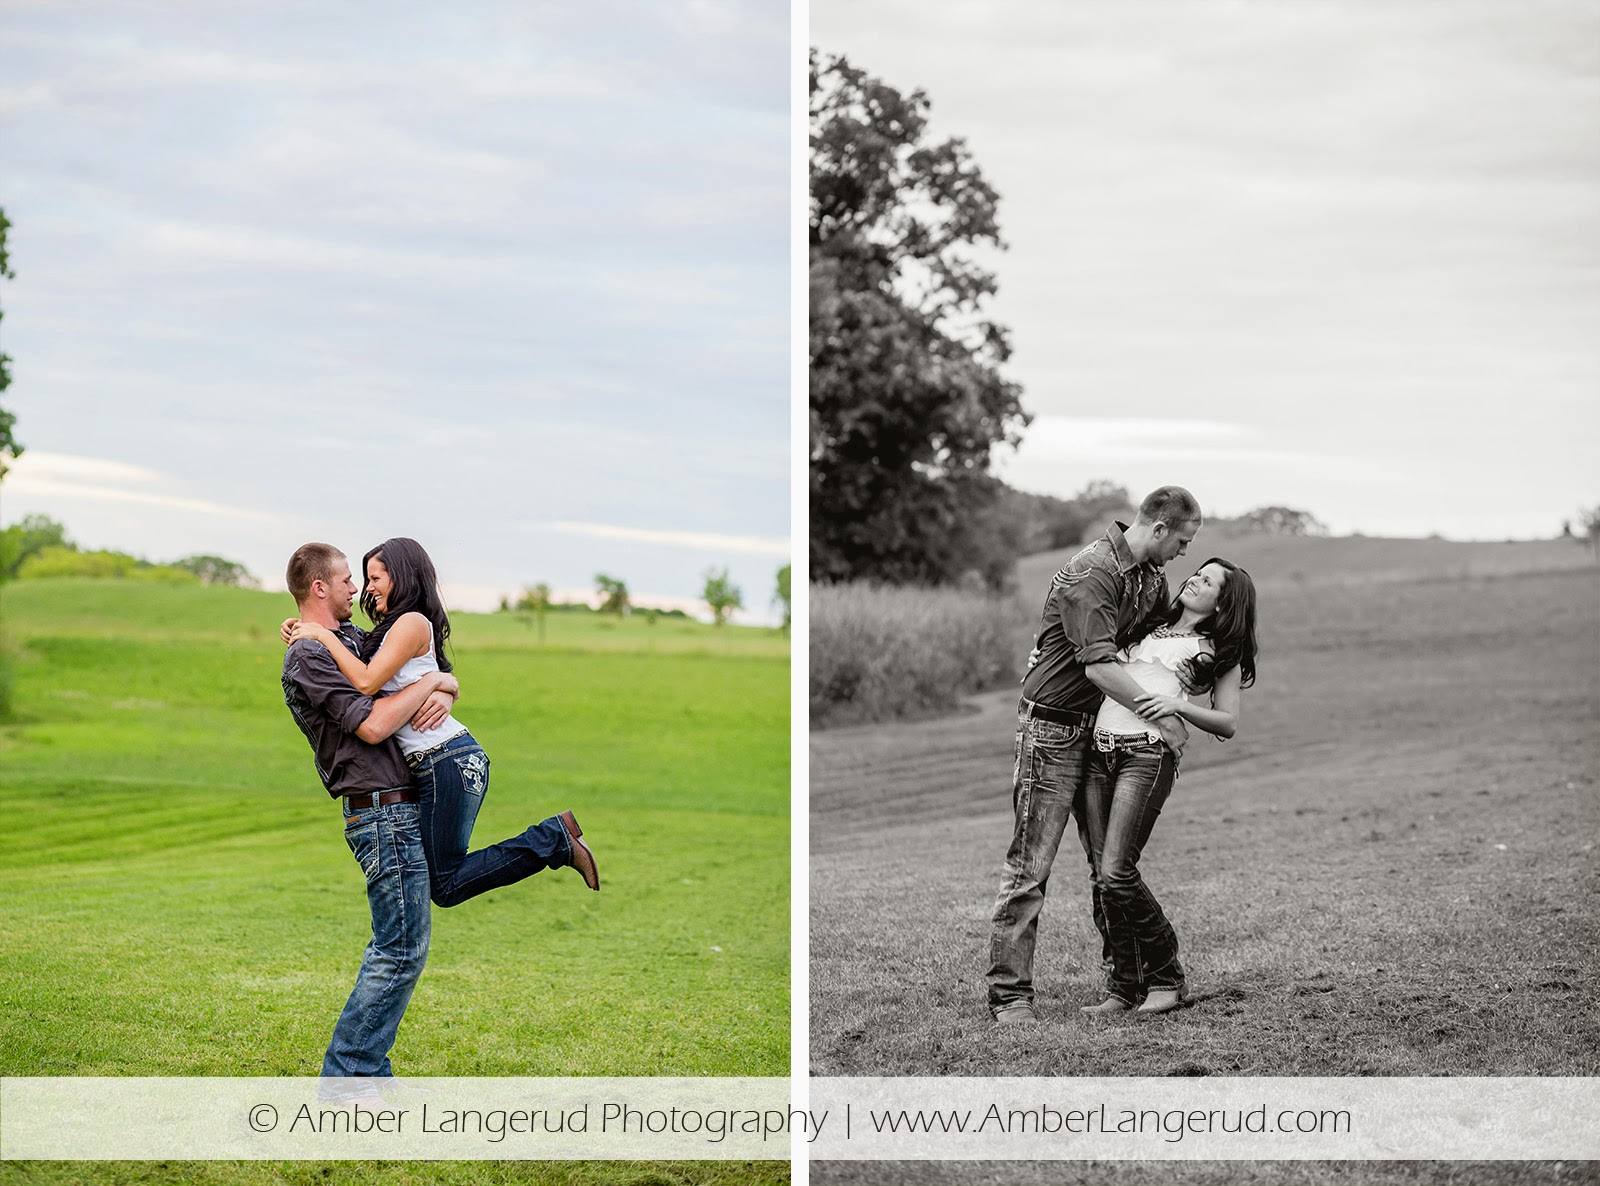 Outdoor Country Engagement Pictures | Detroit Lakes Area Photographer | Engagement Photos lifting & dipping her